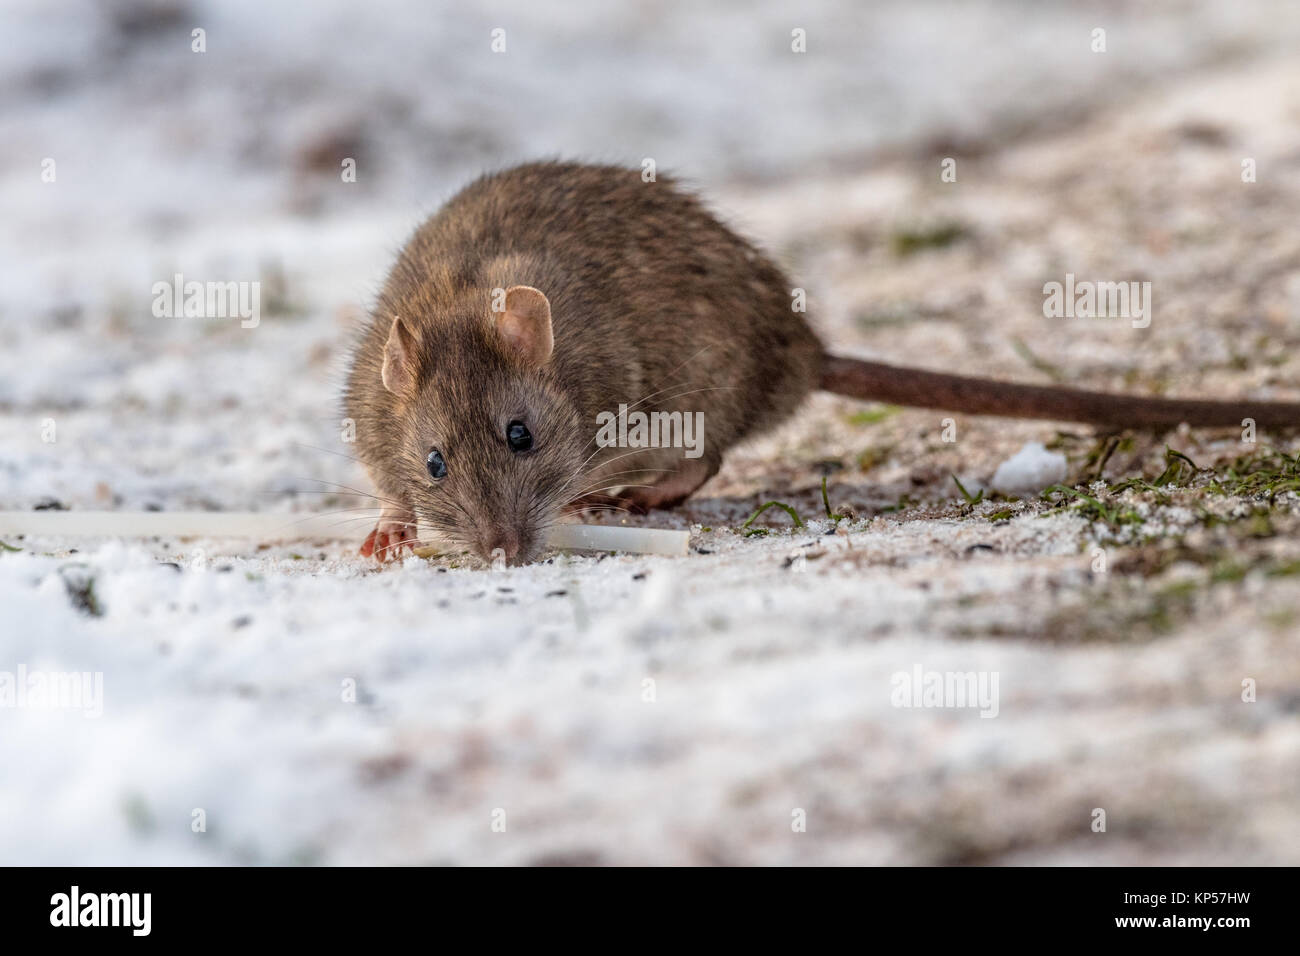 Brown Rat eating seeds on a snow covered groung. - Stock Image